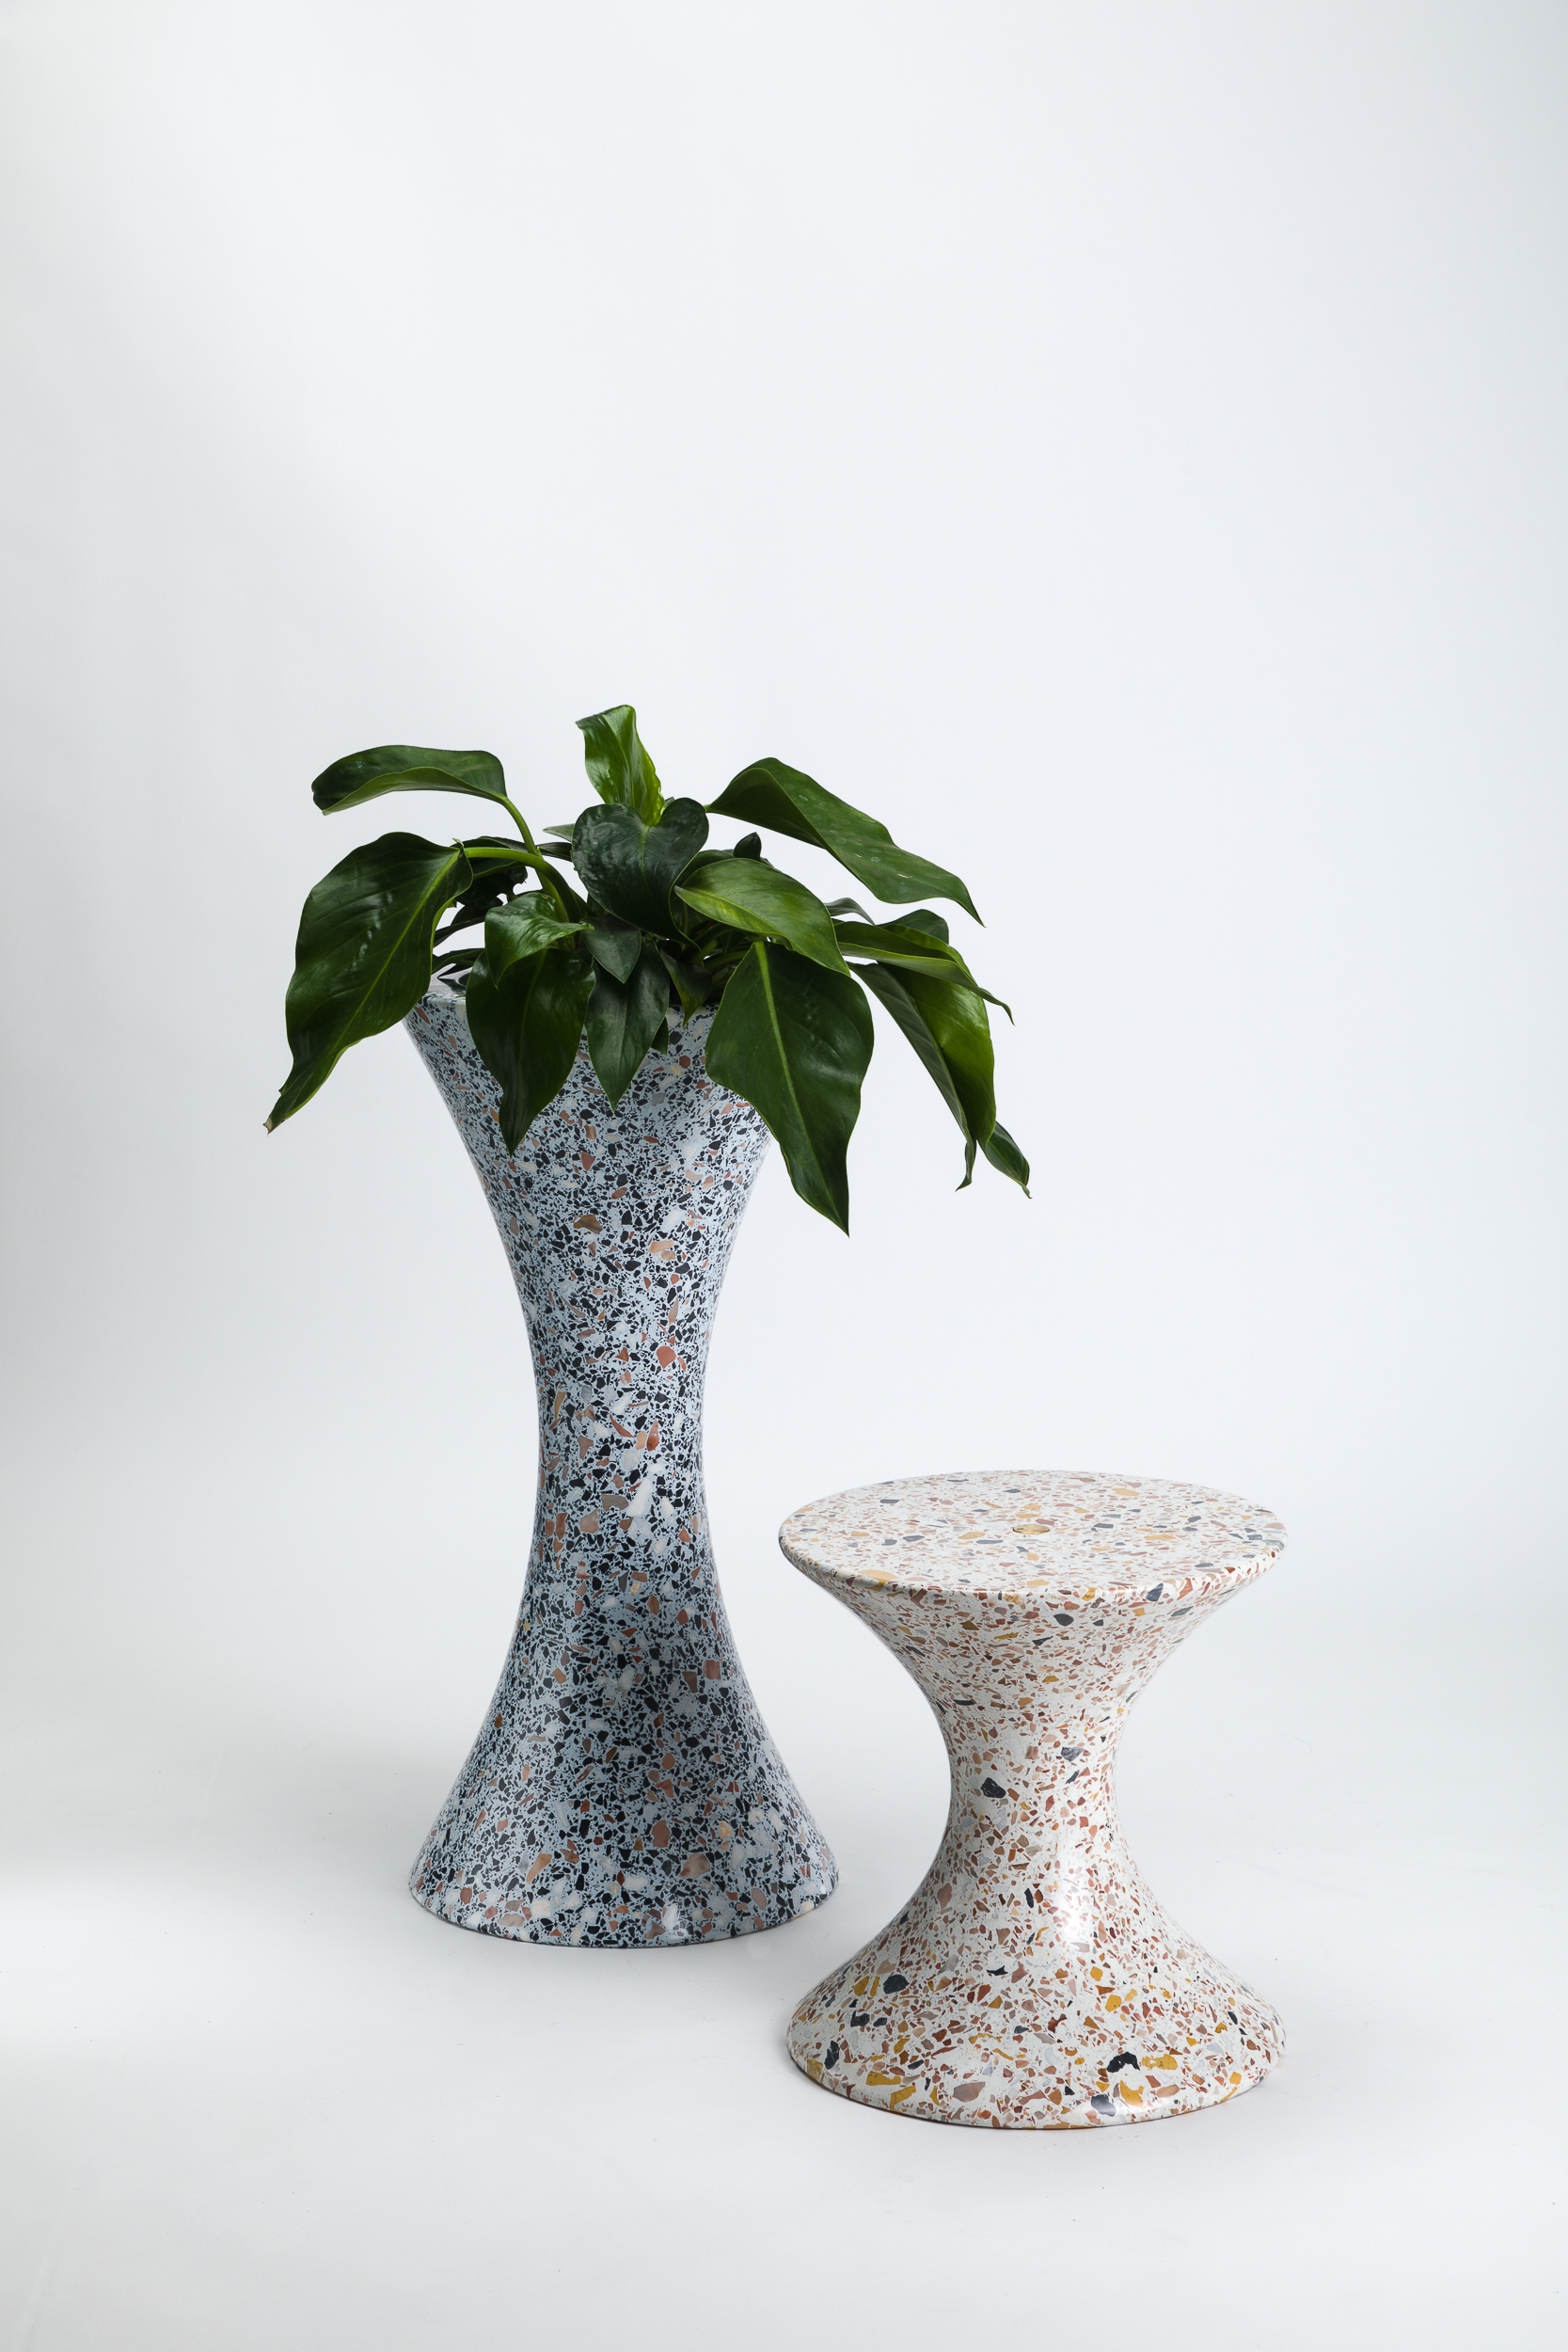 LAUN - Confetti Planter L Table S 001_photo credit Little League Studio.jpg